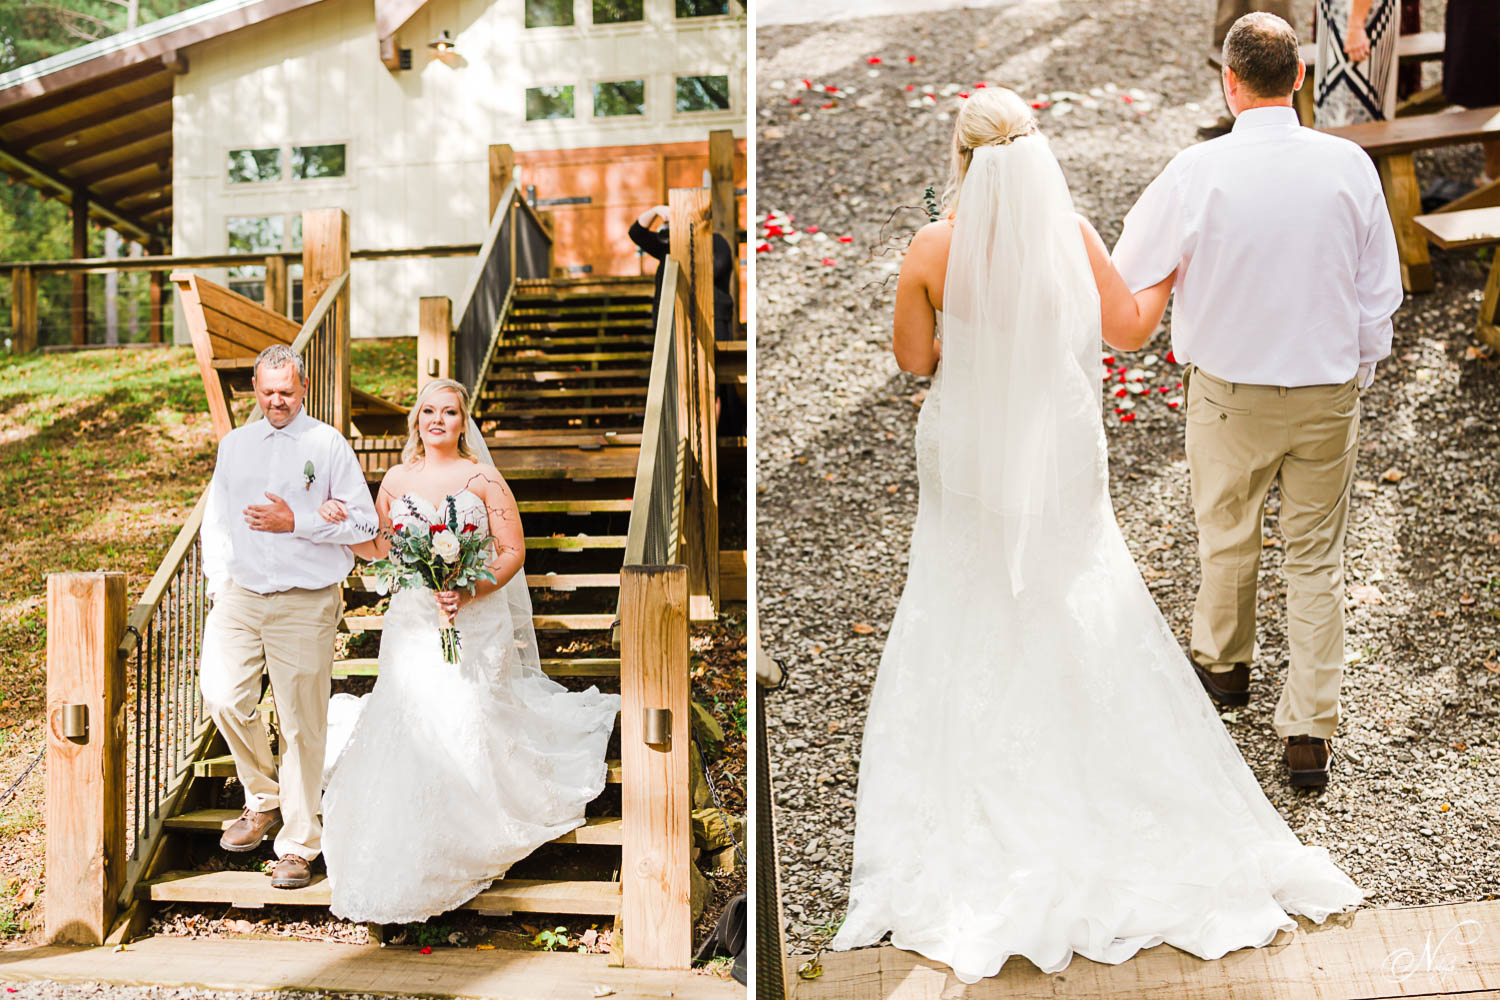 the grand rustic stairs at Hiwassee River Weddings with a bride and her dad walking in. And back view of bride and dad walking in.